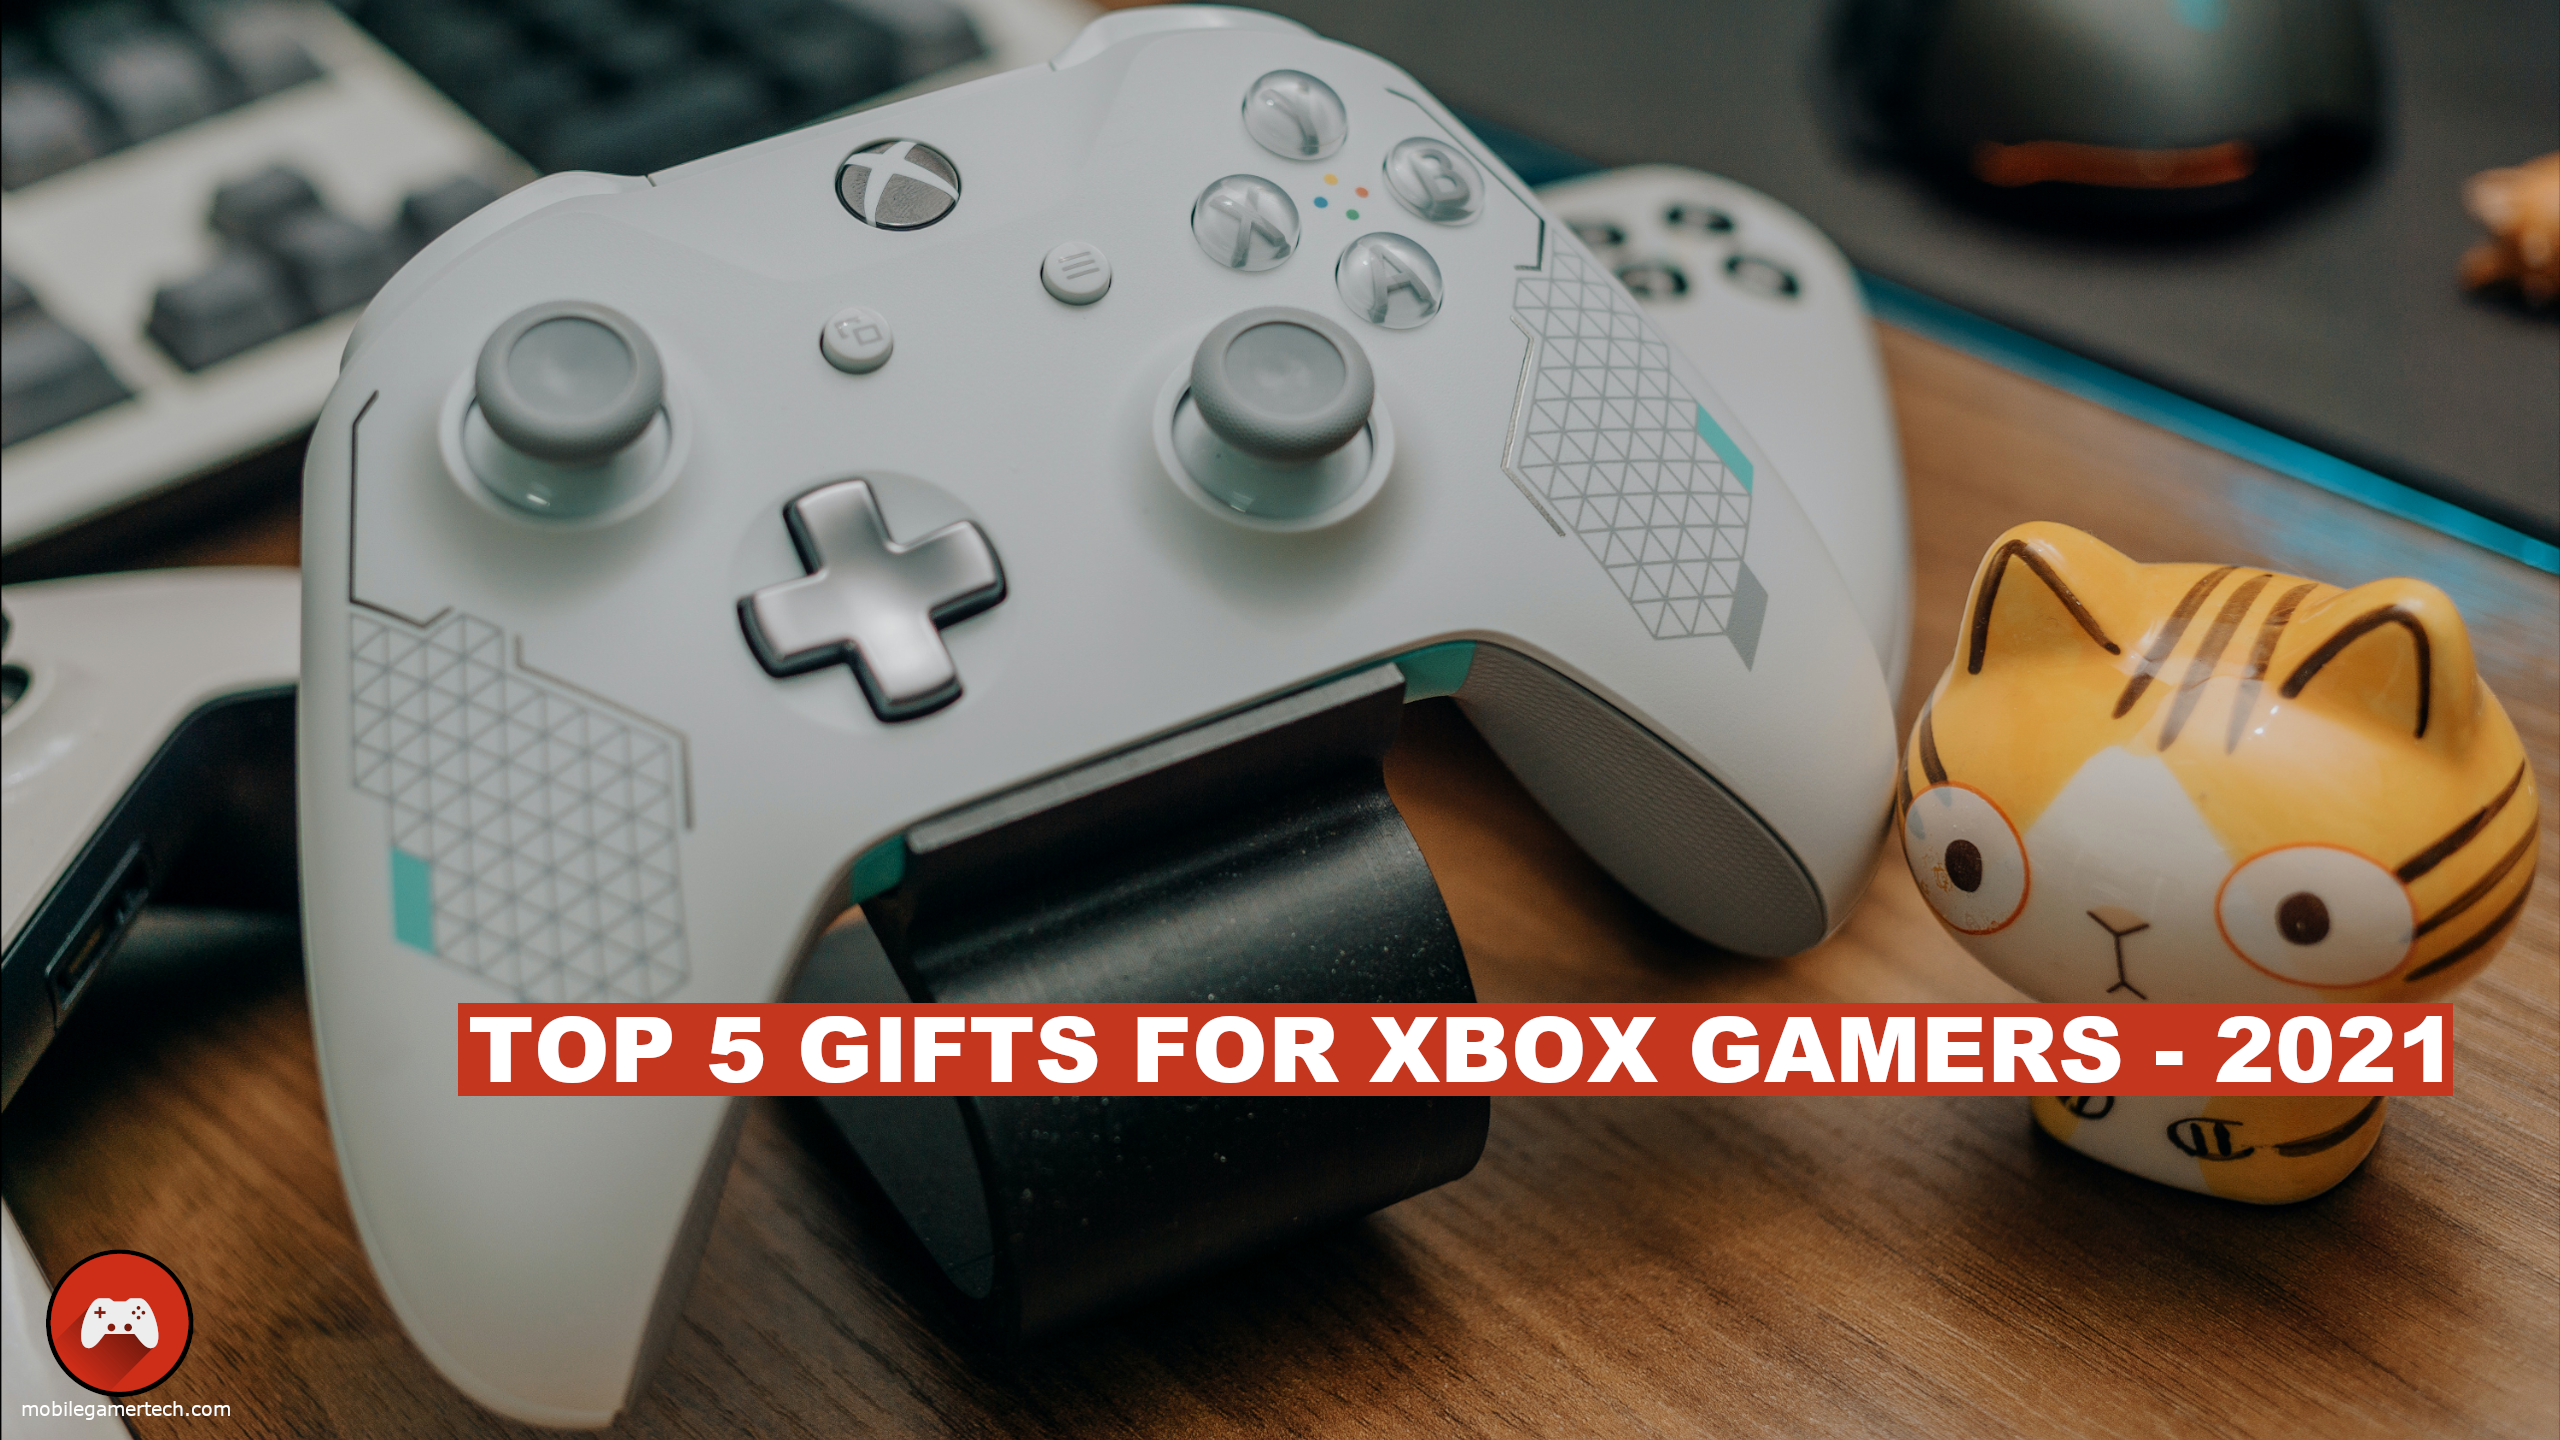 Top 5 Gifts for Xbox Gamers